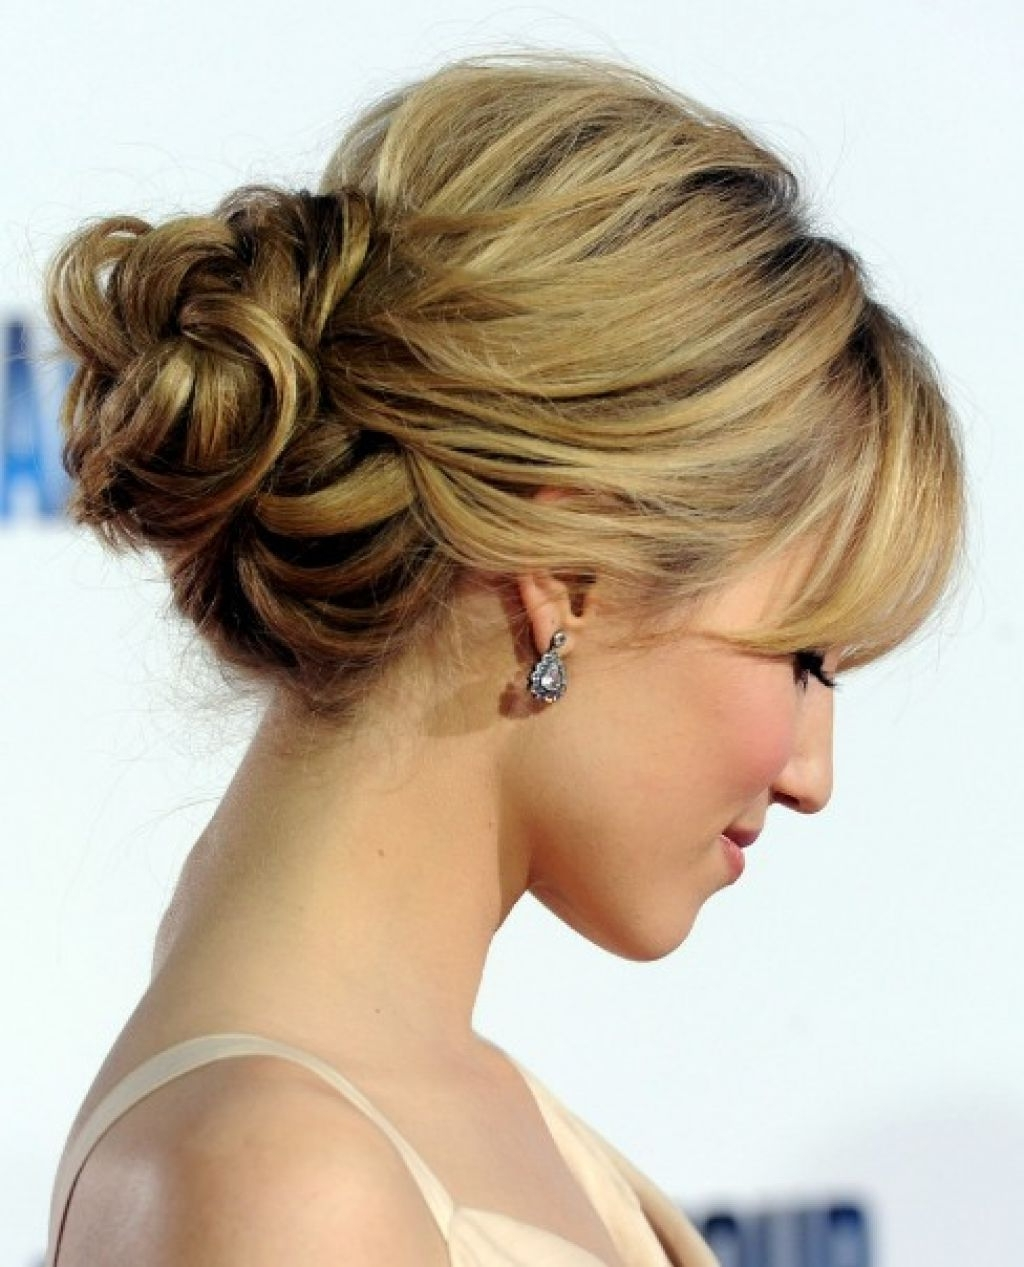 Romantic Loose Low Bun Updo For Wedding From Dianna Agron | Wedding Inside Low Messy Updo Hairstyles (View 8 of 15)